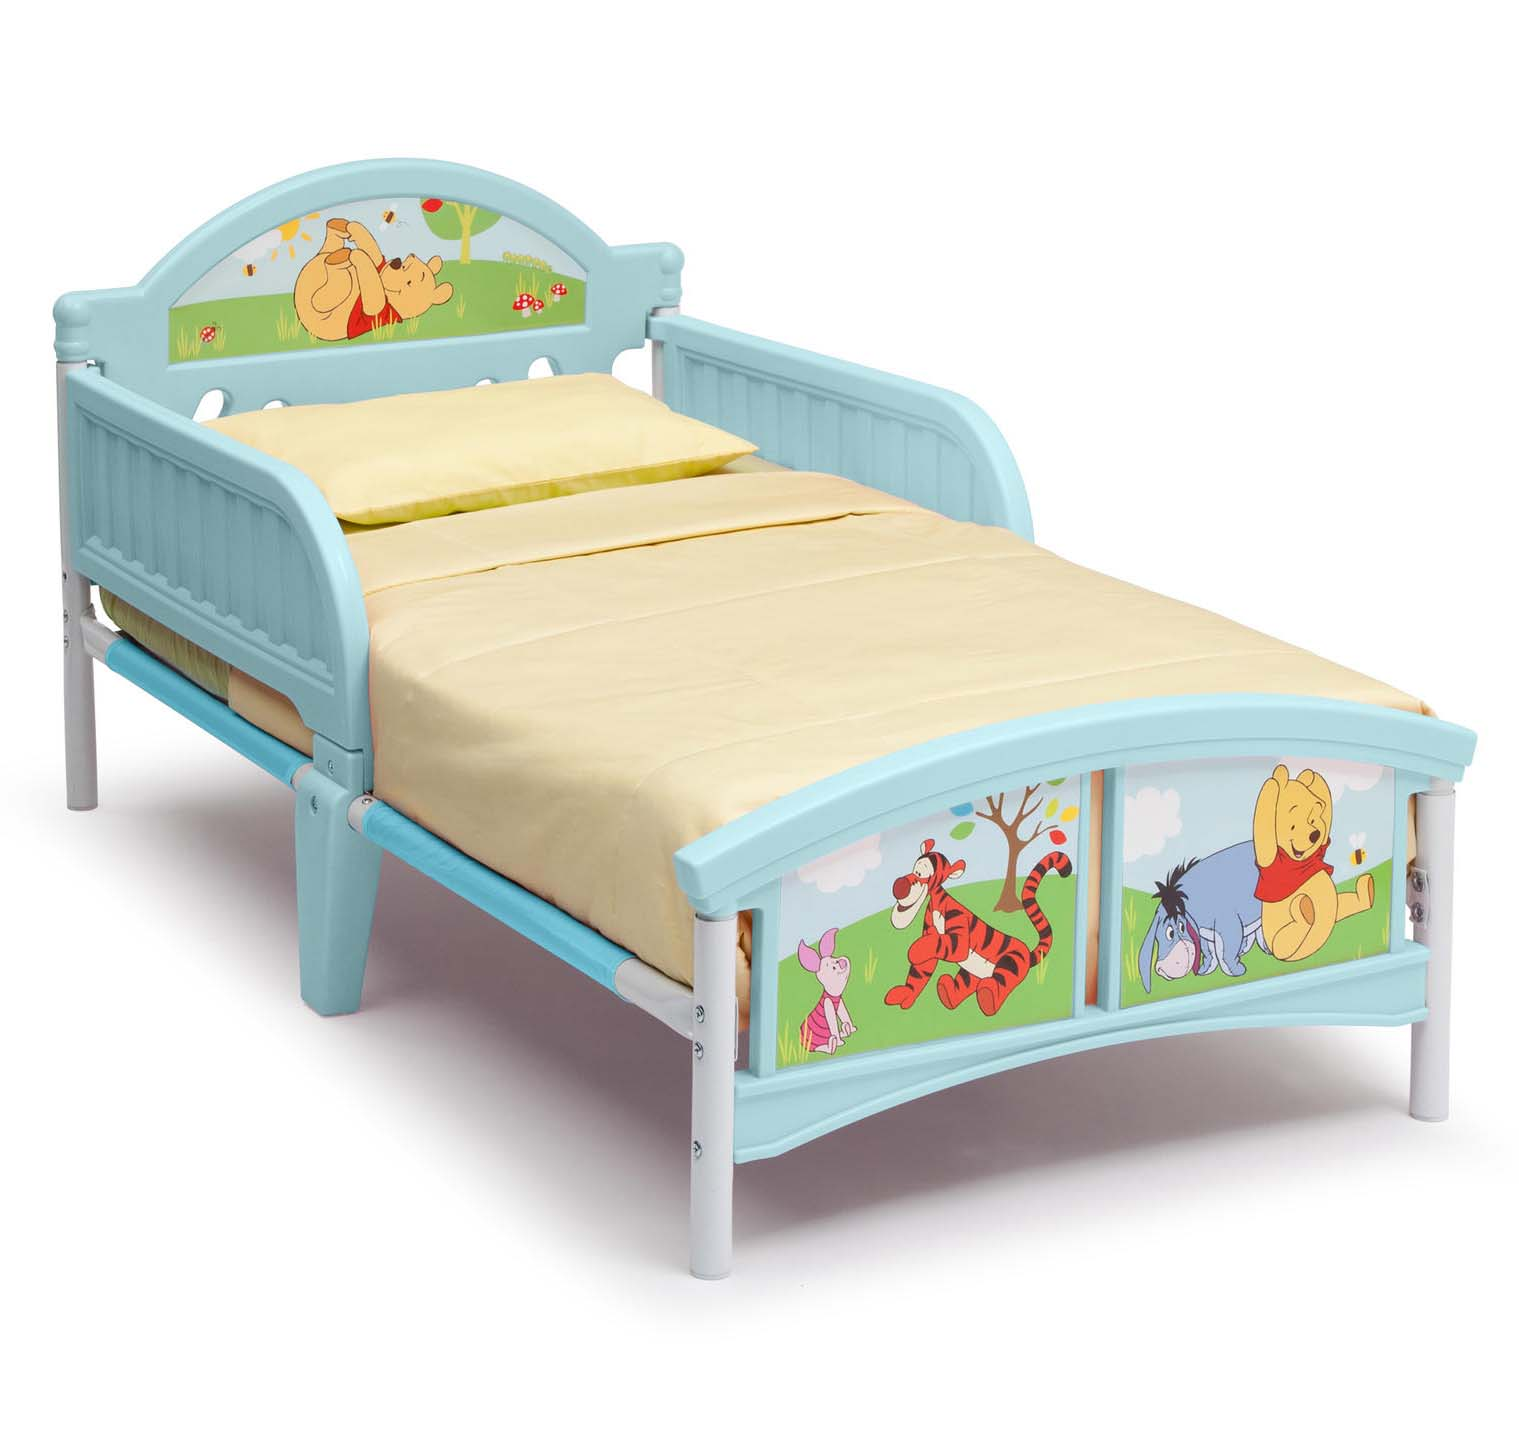 Juniorbed Te Koop.Winnie The Pooh Junior Bed